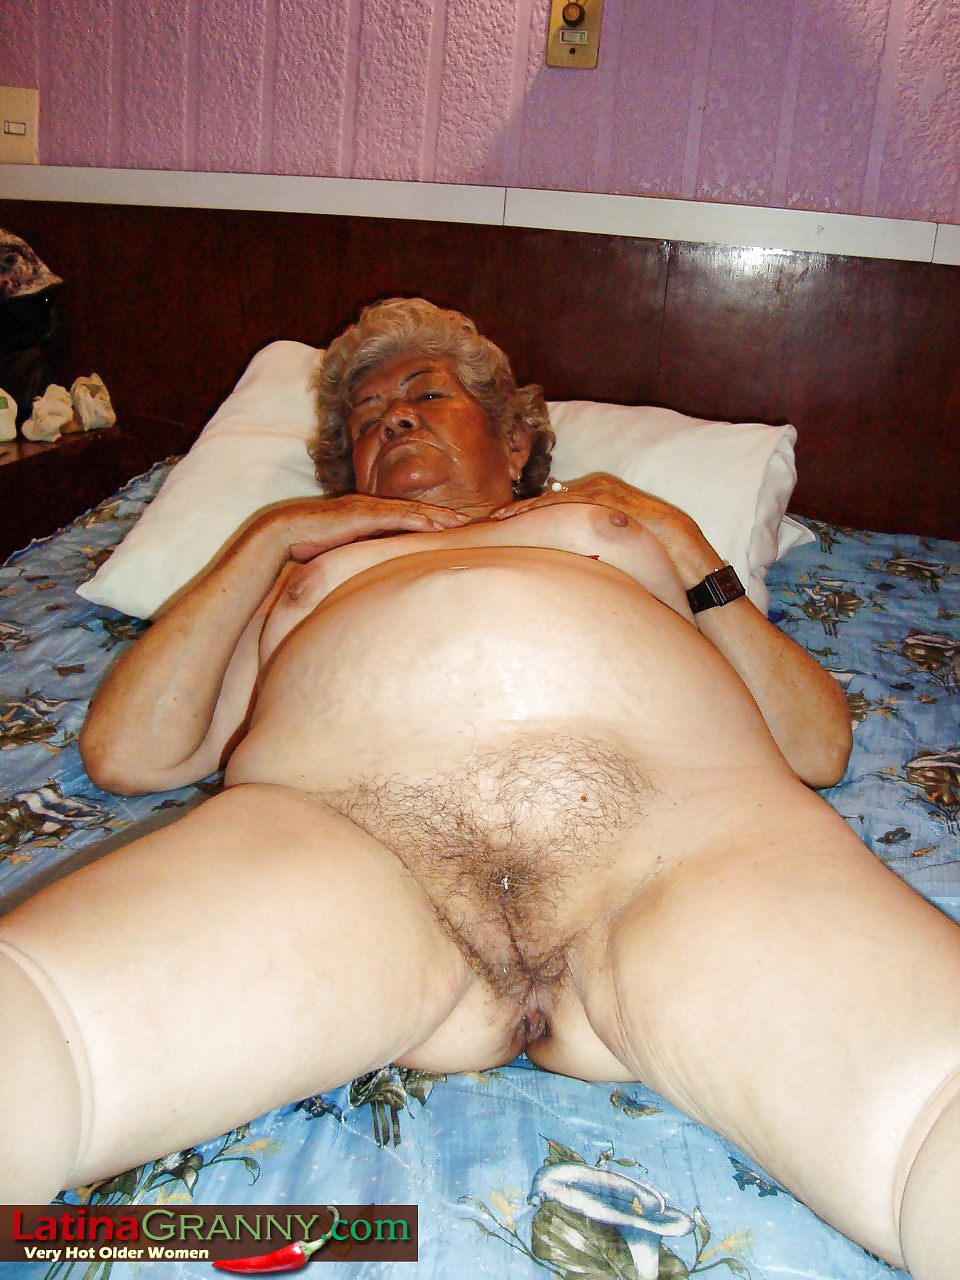 Very Old Naked Granny - 15 Pics - Xhamstercom-4497